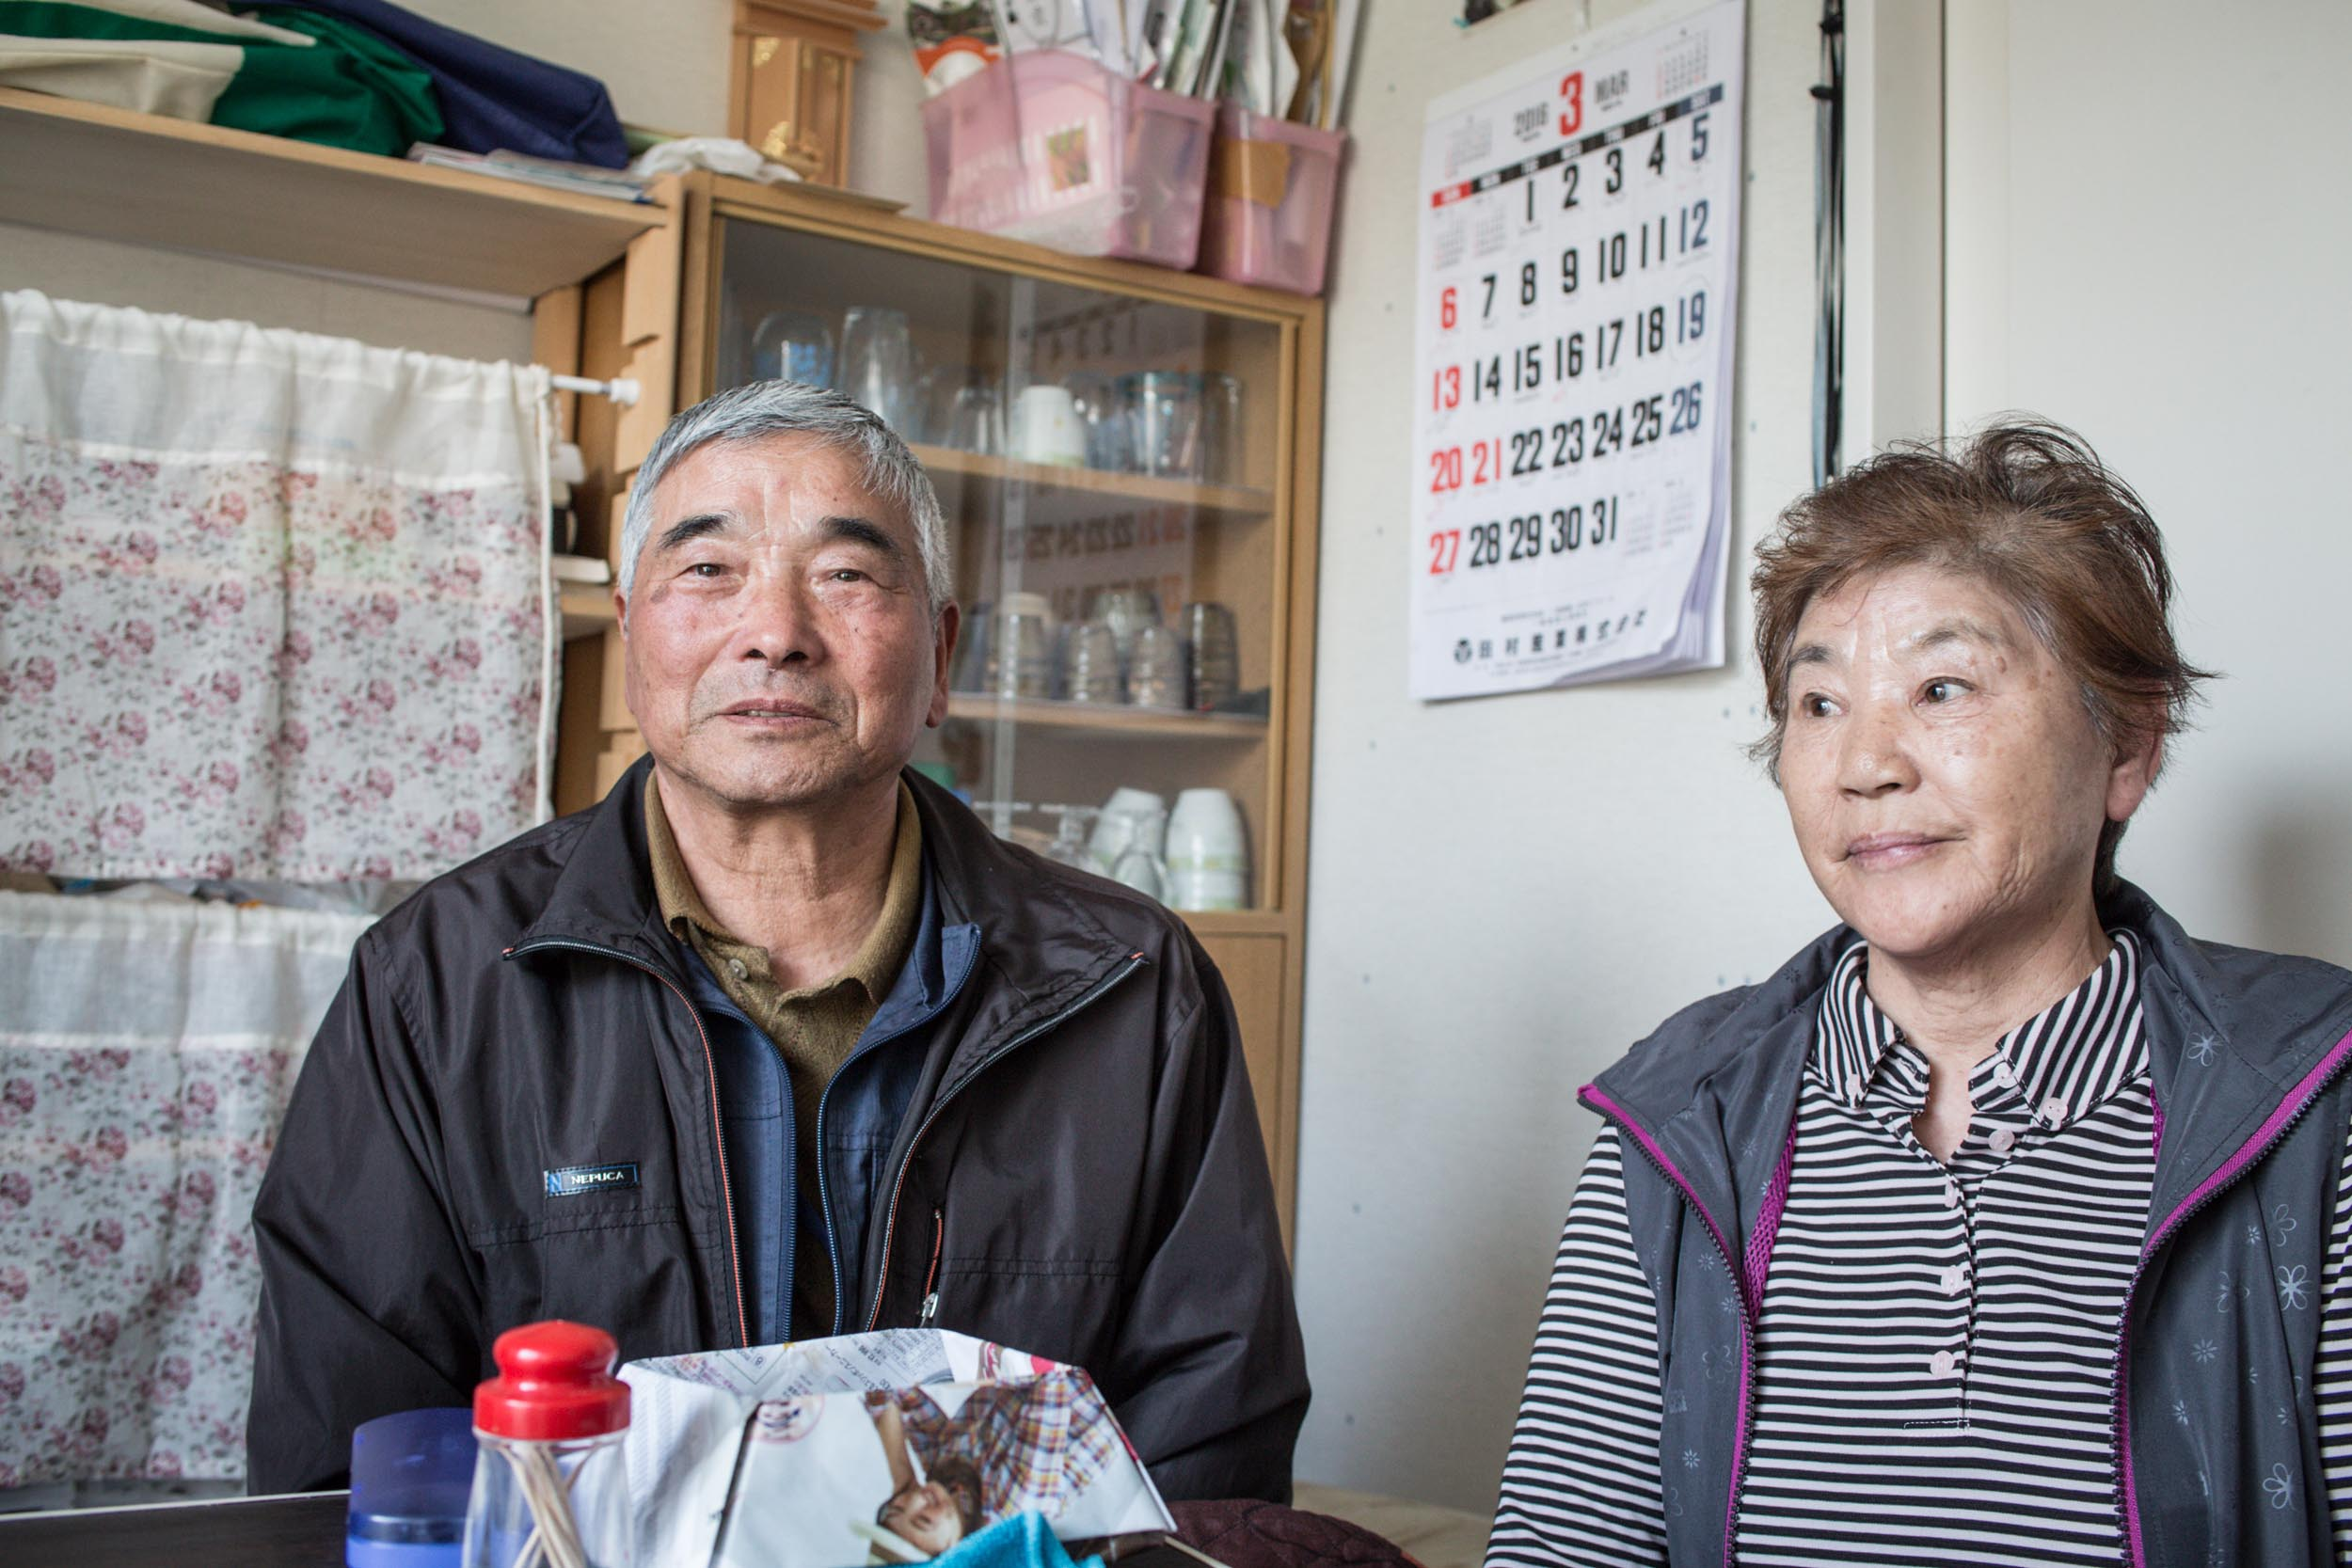 Suzuki Hideji and his wife Toshiko, who were evacuated from Komiya and have rehabilitated in a temporary housing. Mr Suzuki says he cannot go back to those good days. Many people are suffering from sickness due to the stress of being rehabilitated in temporary shelters and not being able to return to normal life.